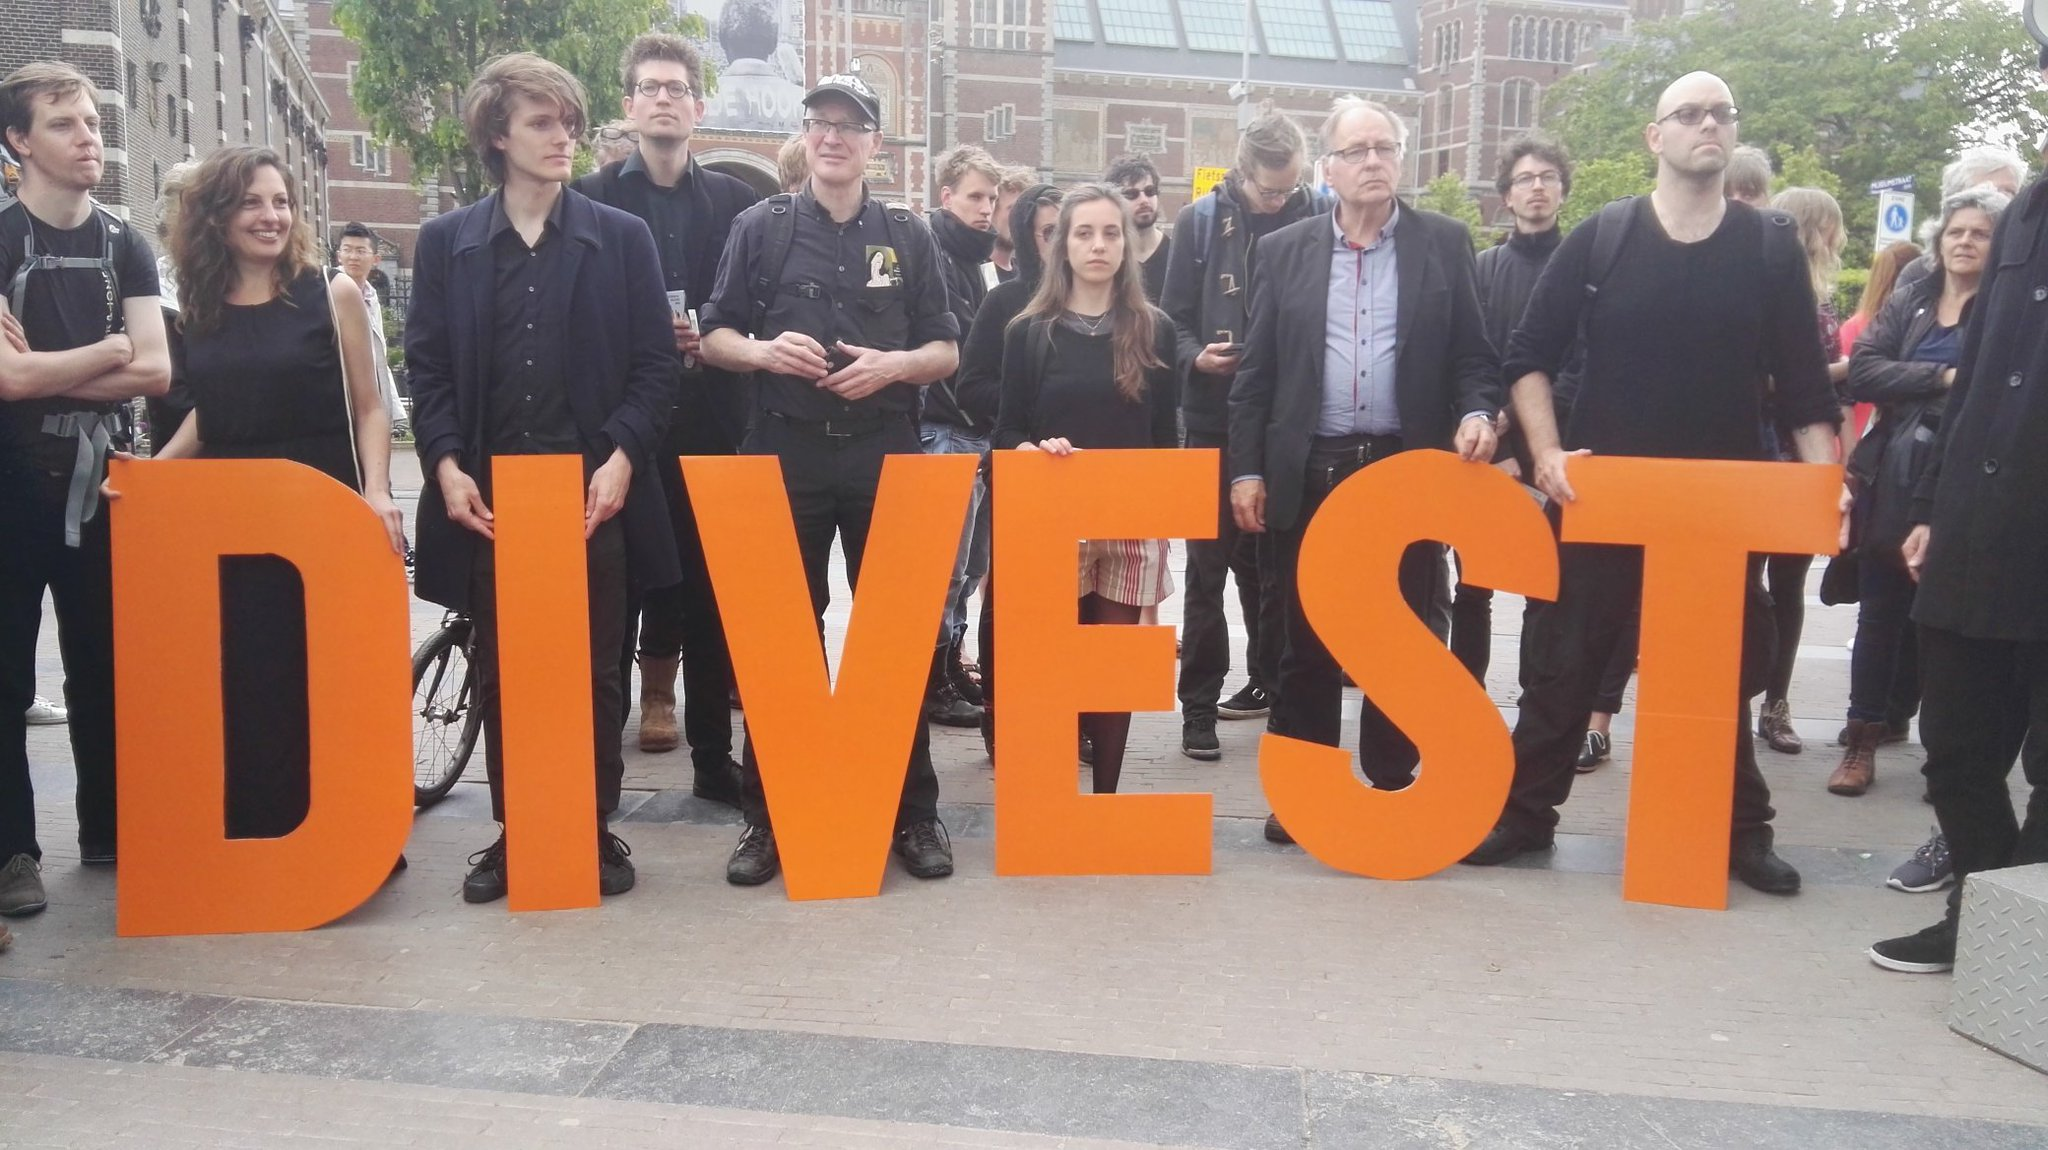 Wake for #VanGogh8 to @vangoghmuseum  started at Museumplein Amsterdam #divest https://t.co/lyAAPCkd8K